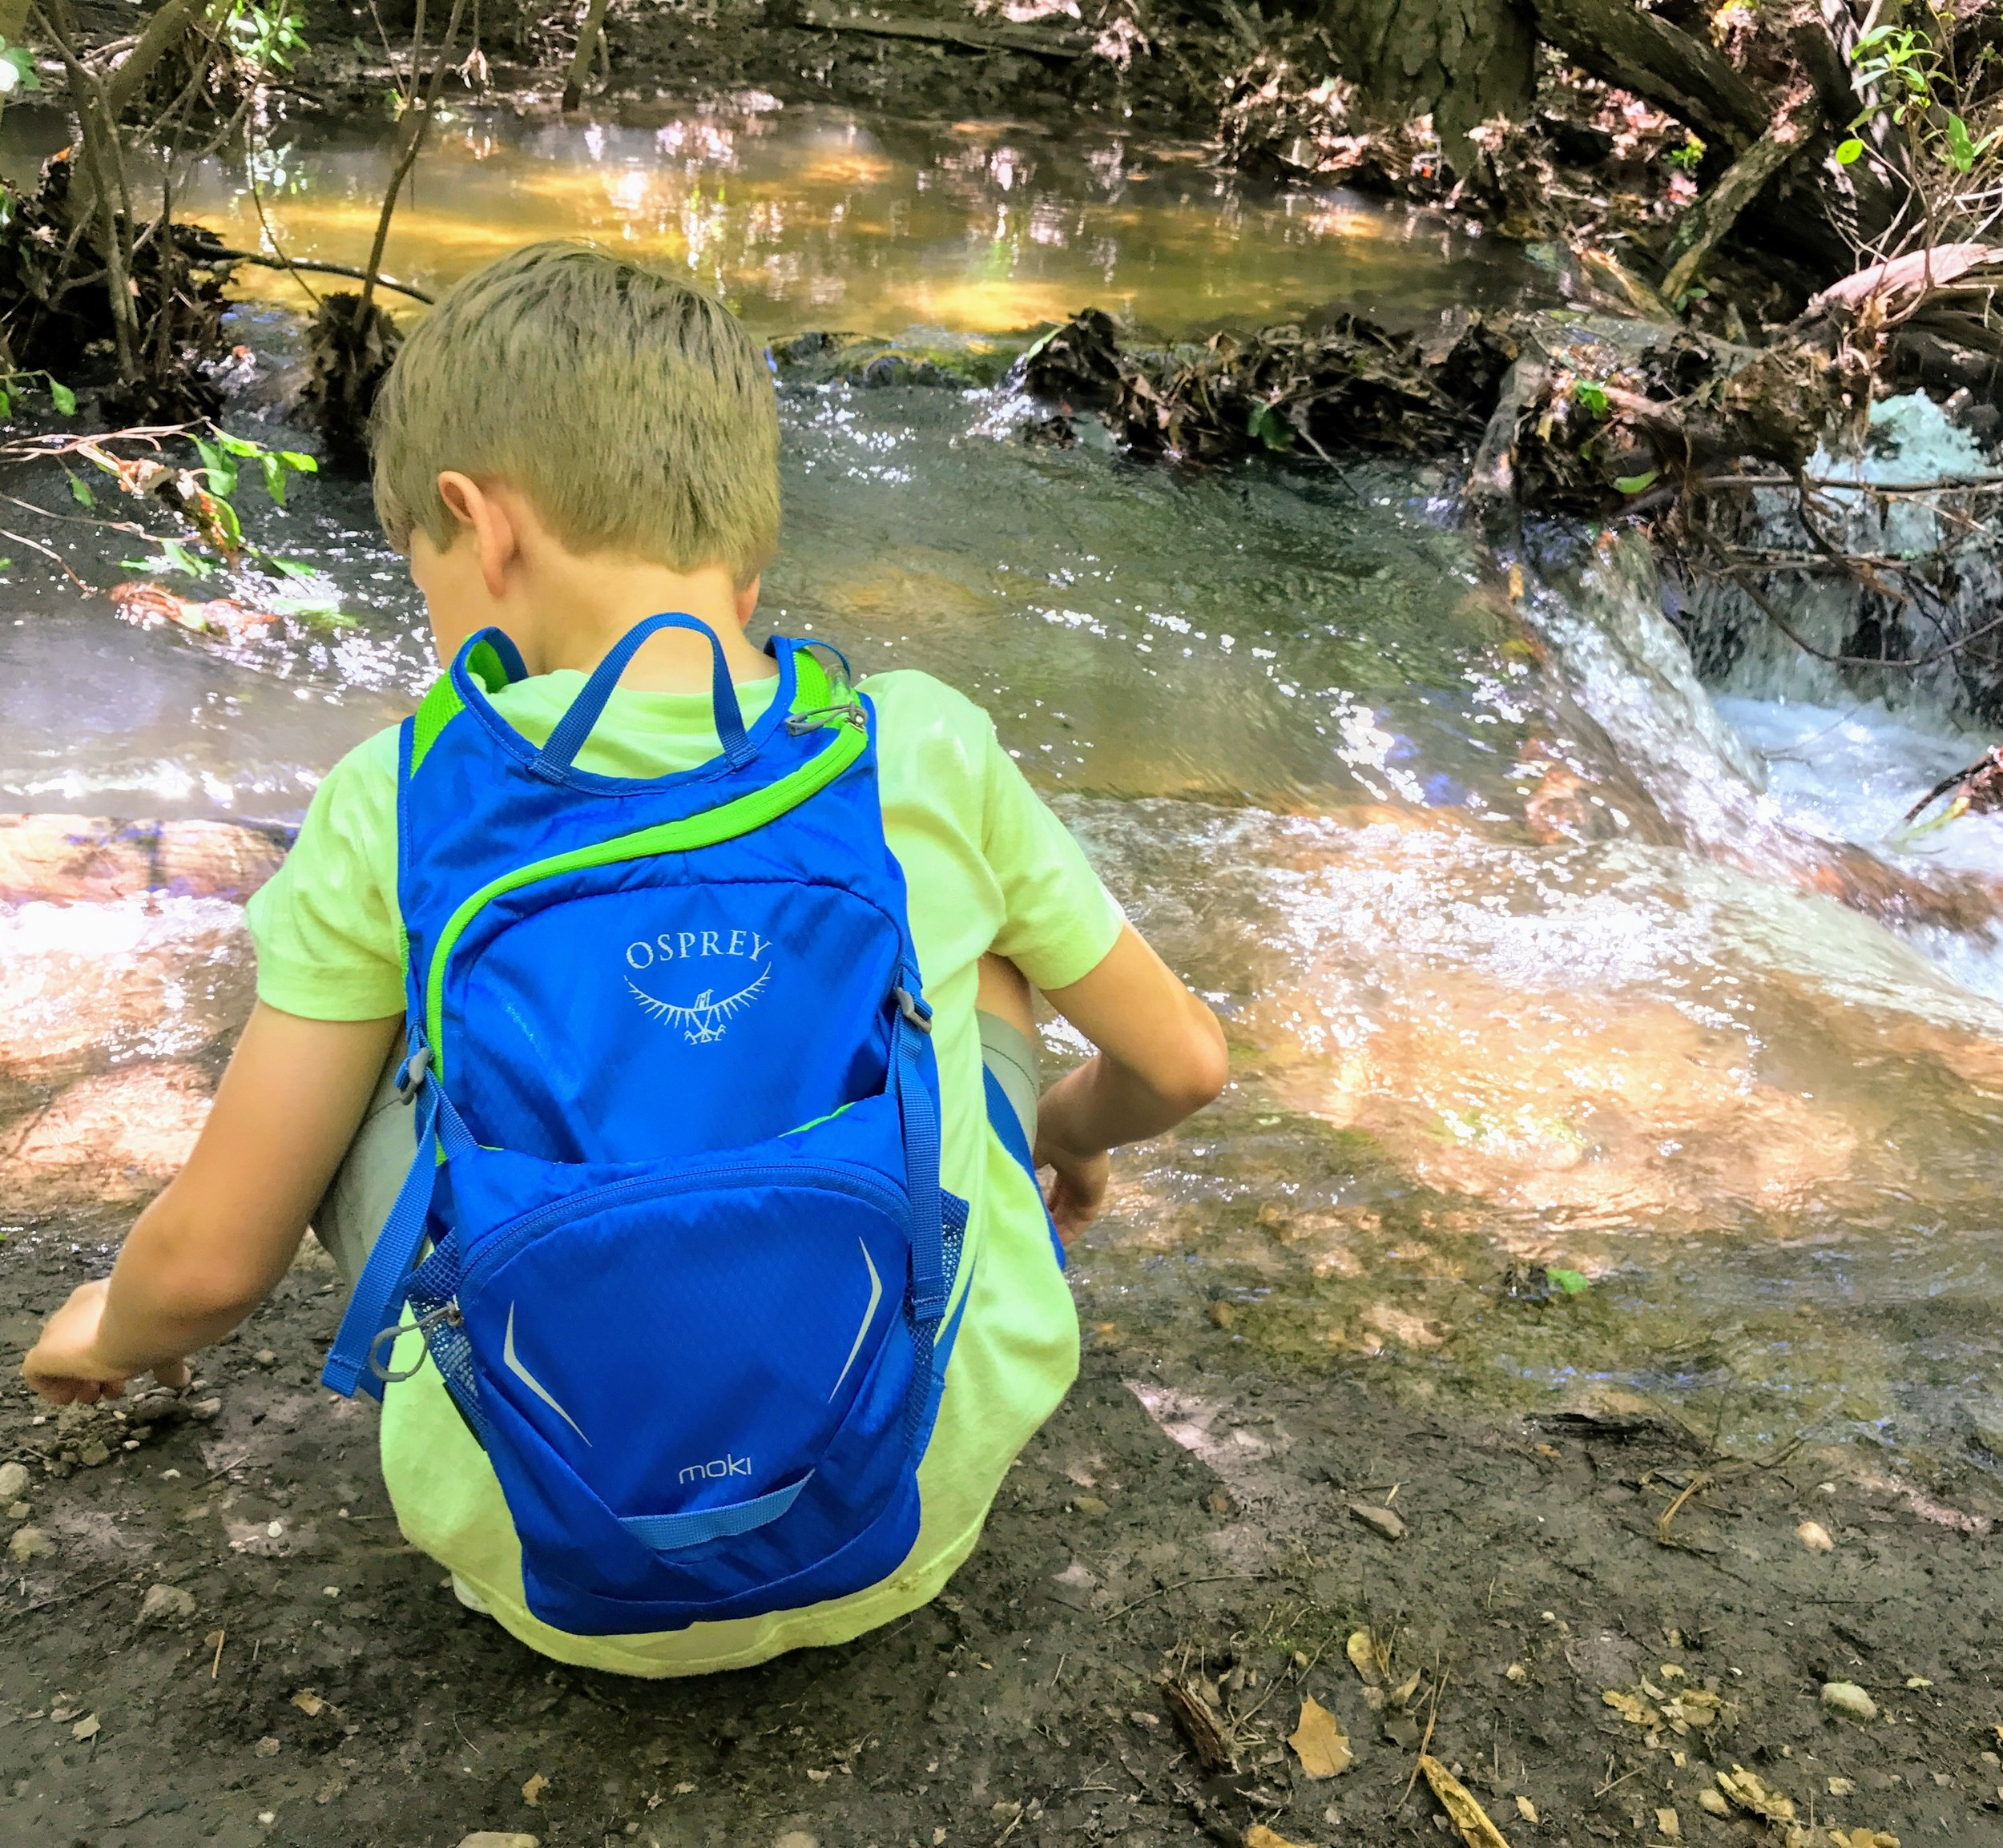 Testing out the Osprey hydration pack at Oak Mountain